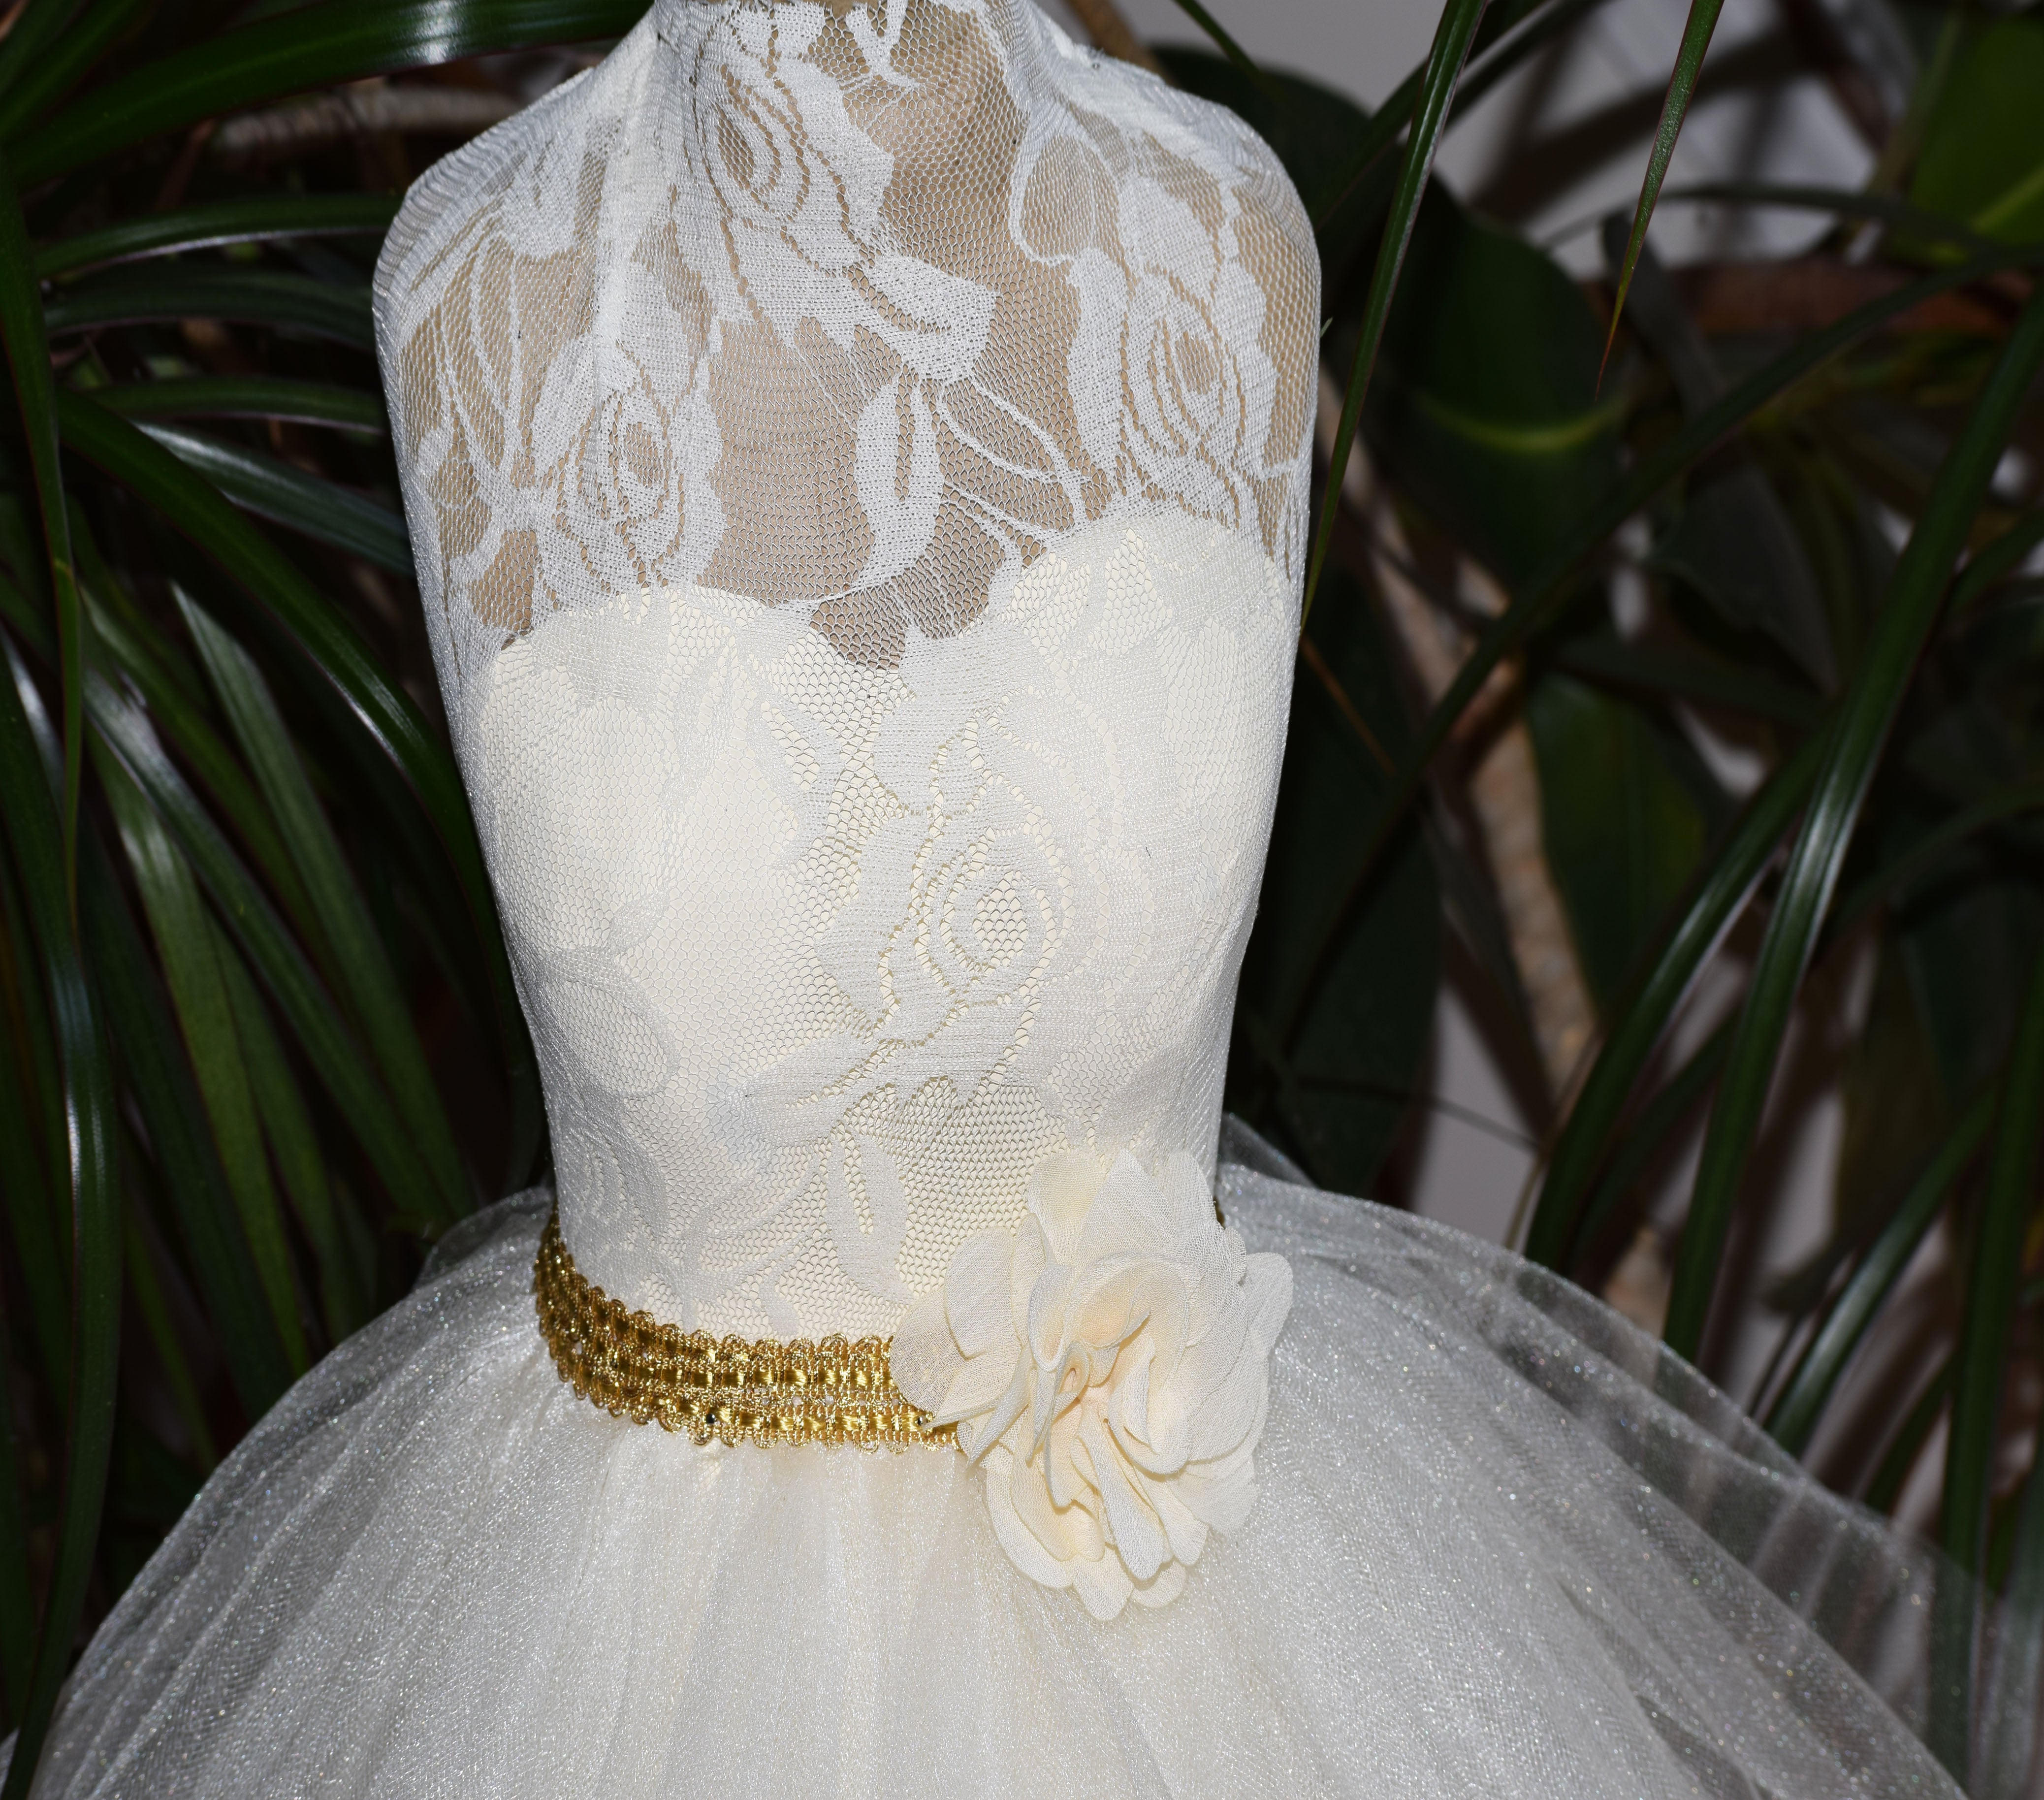 Lace Top with Full Skirt Wedding Dress Centerpiece